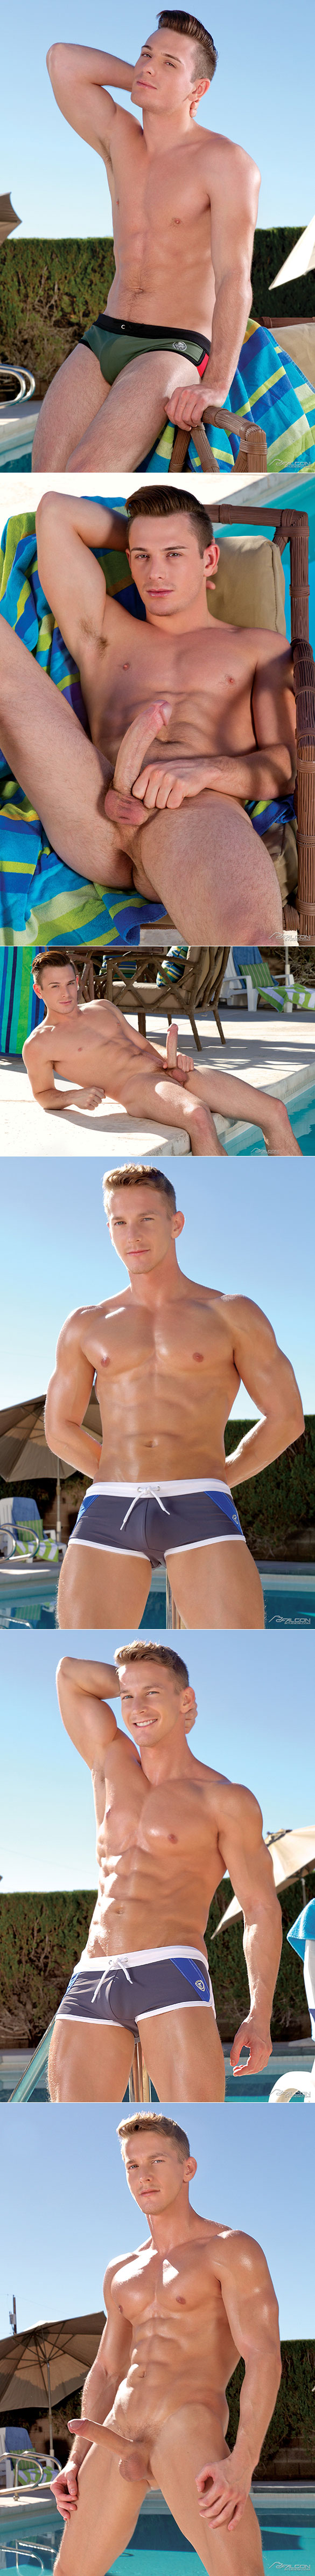 "Falcon Studios: Brent Corrigan and Darius Ferdynand flip fuck in ""Poolside 1"""